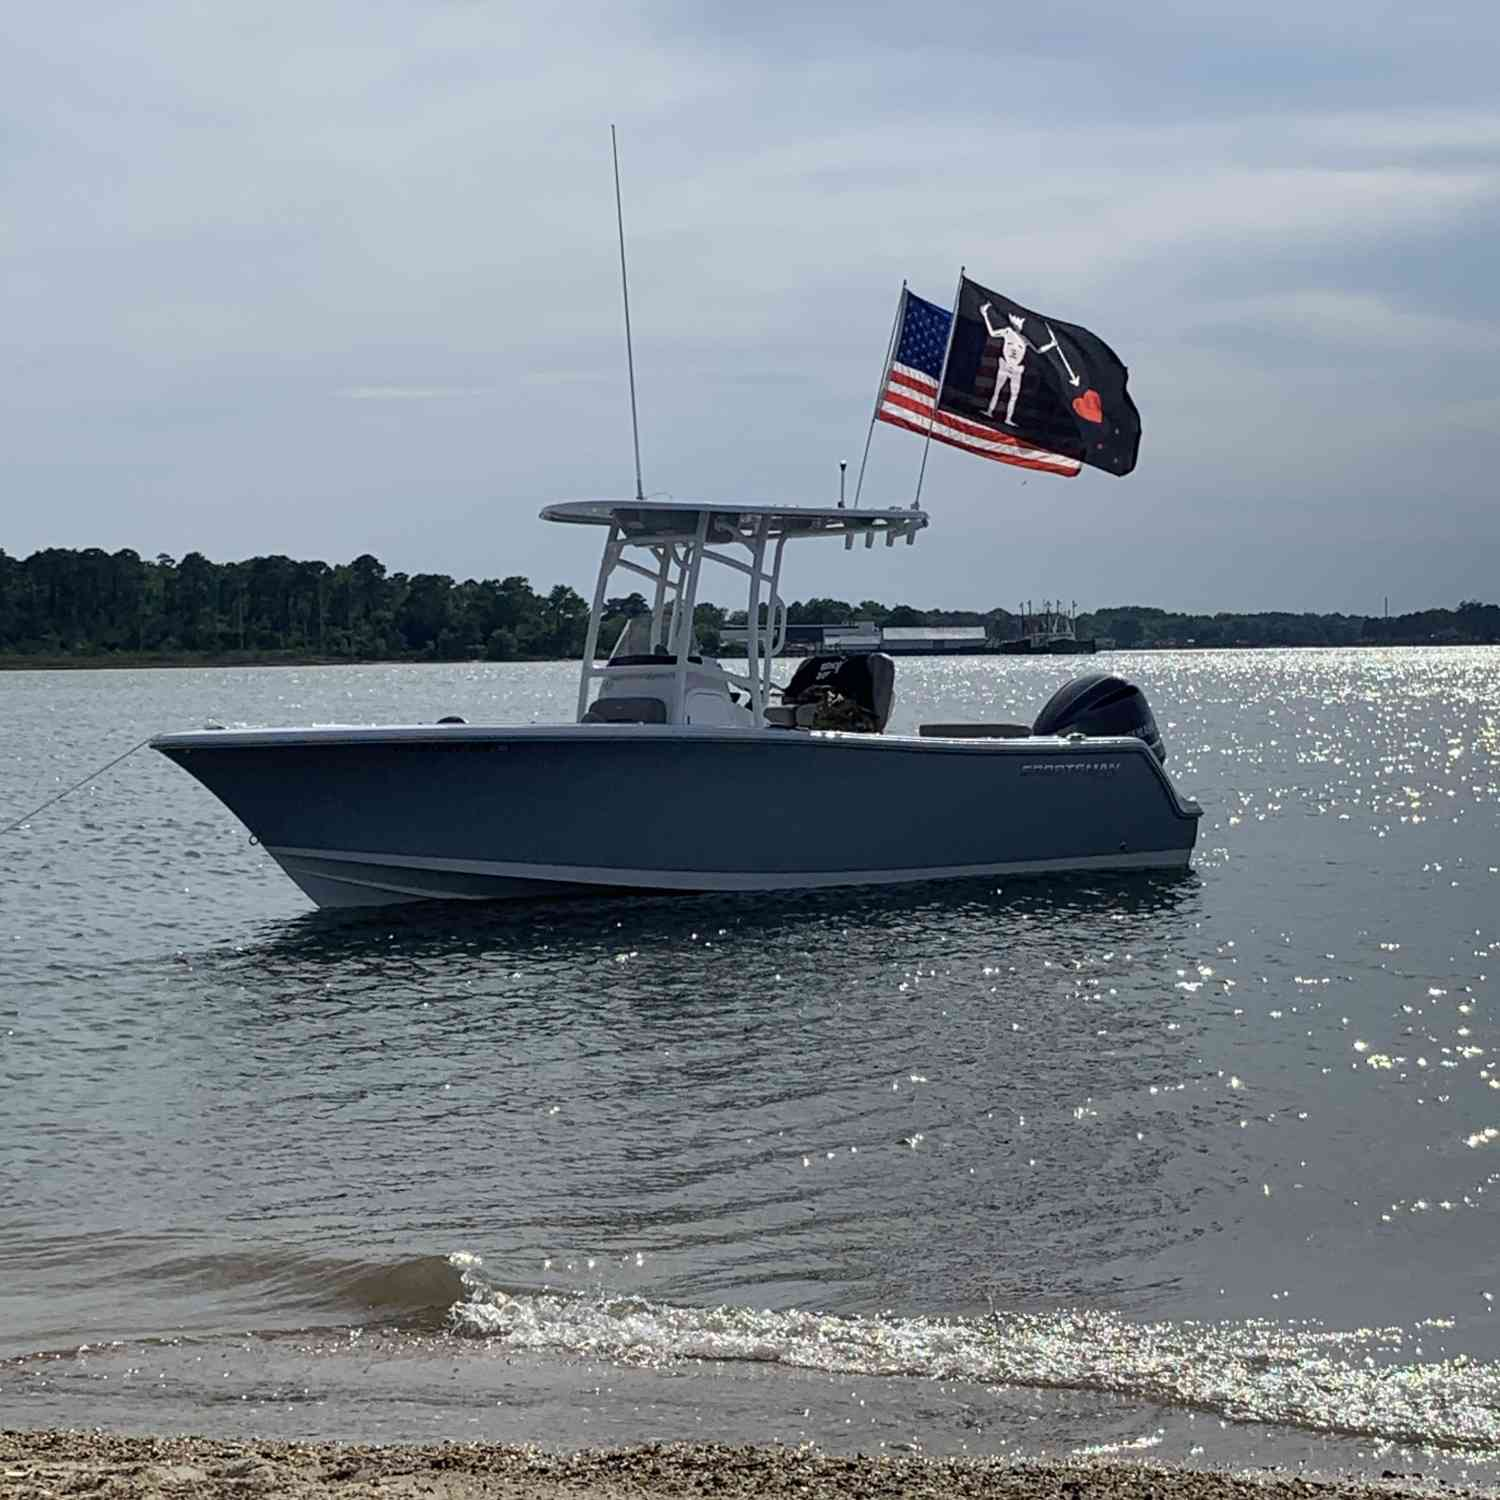 Sunday Funday anchored up in treason cove. Sea's were easily 3-4 feet...but no fear and no sweat in the Sportsman!